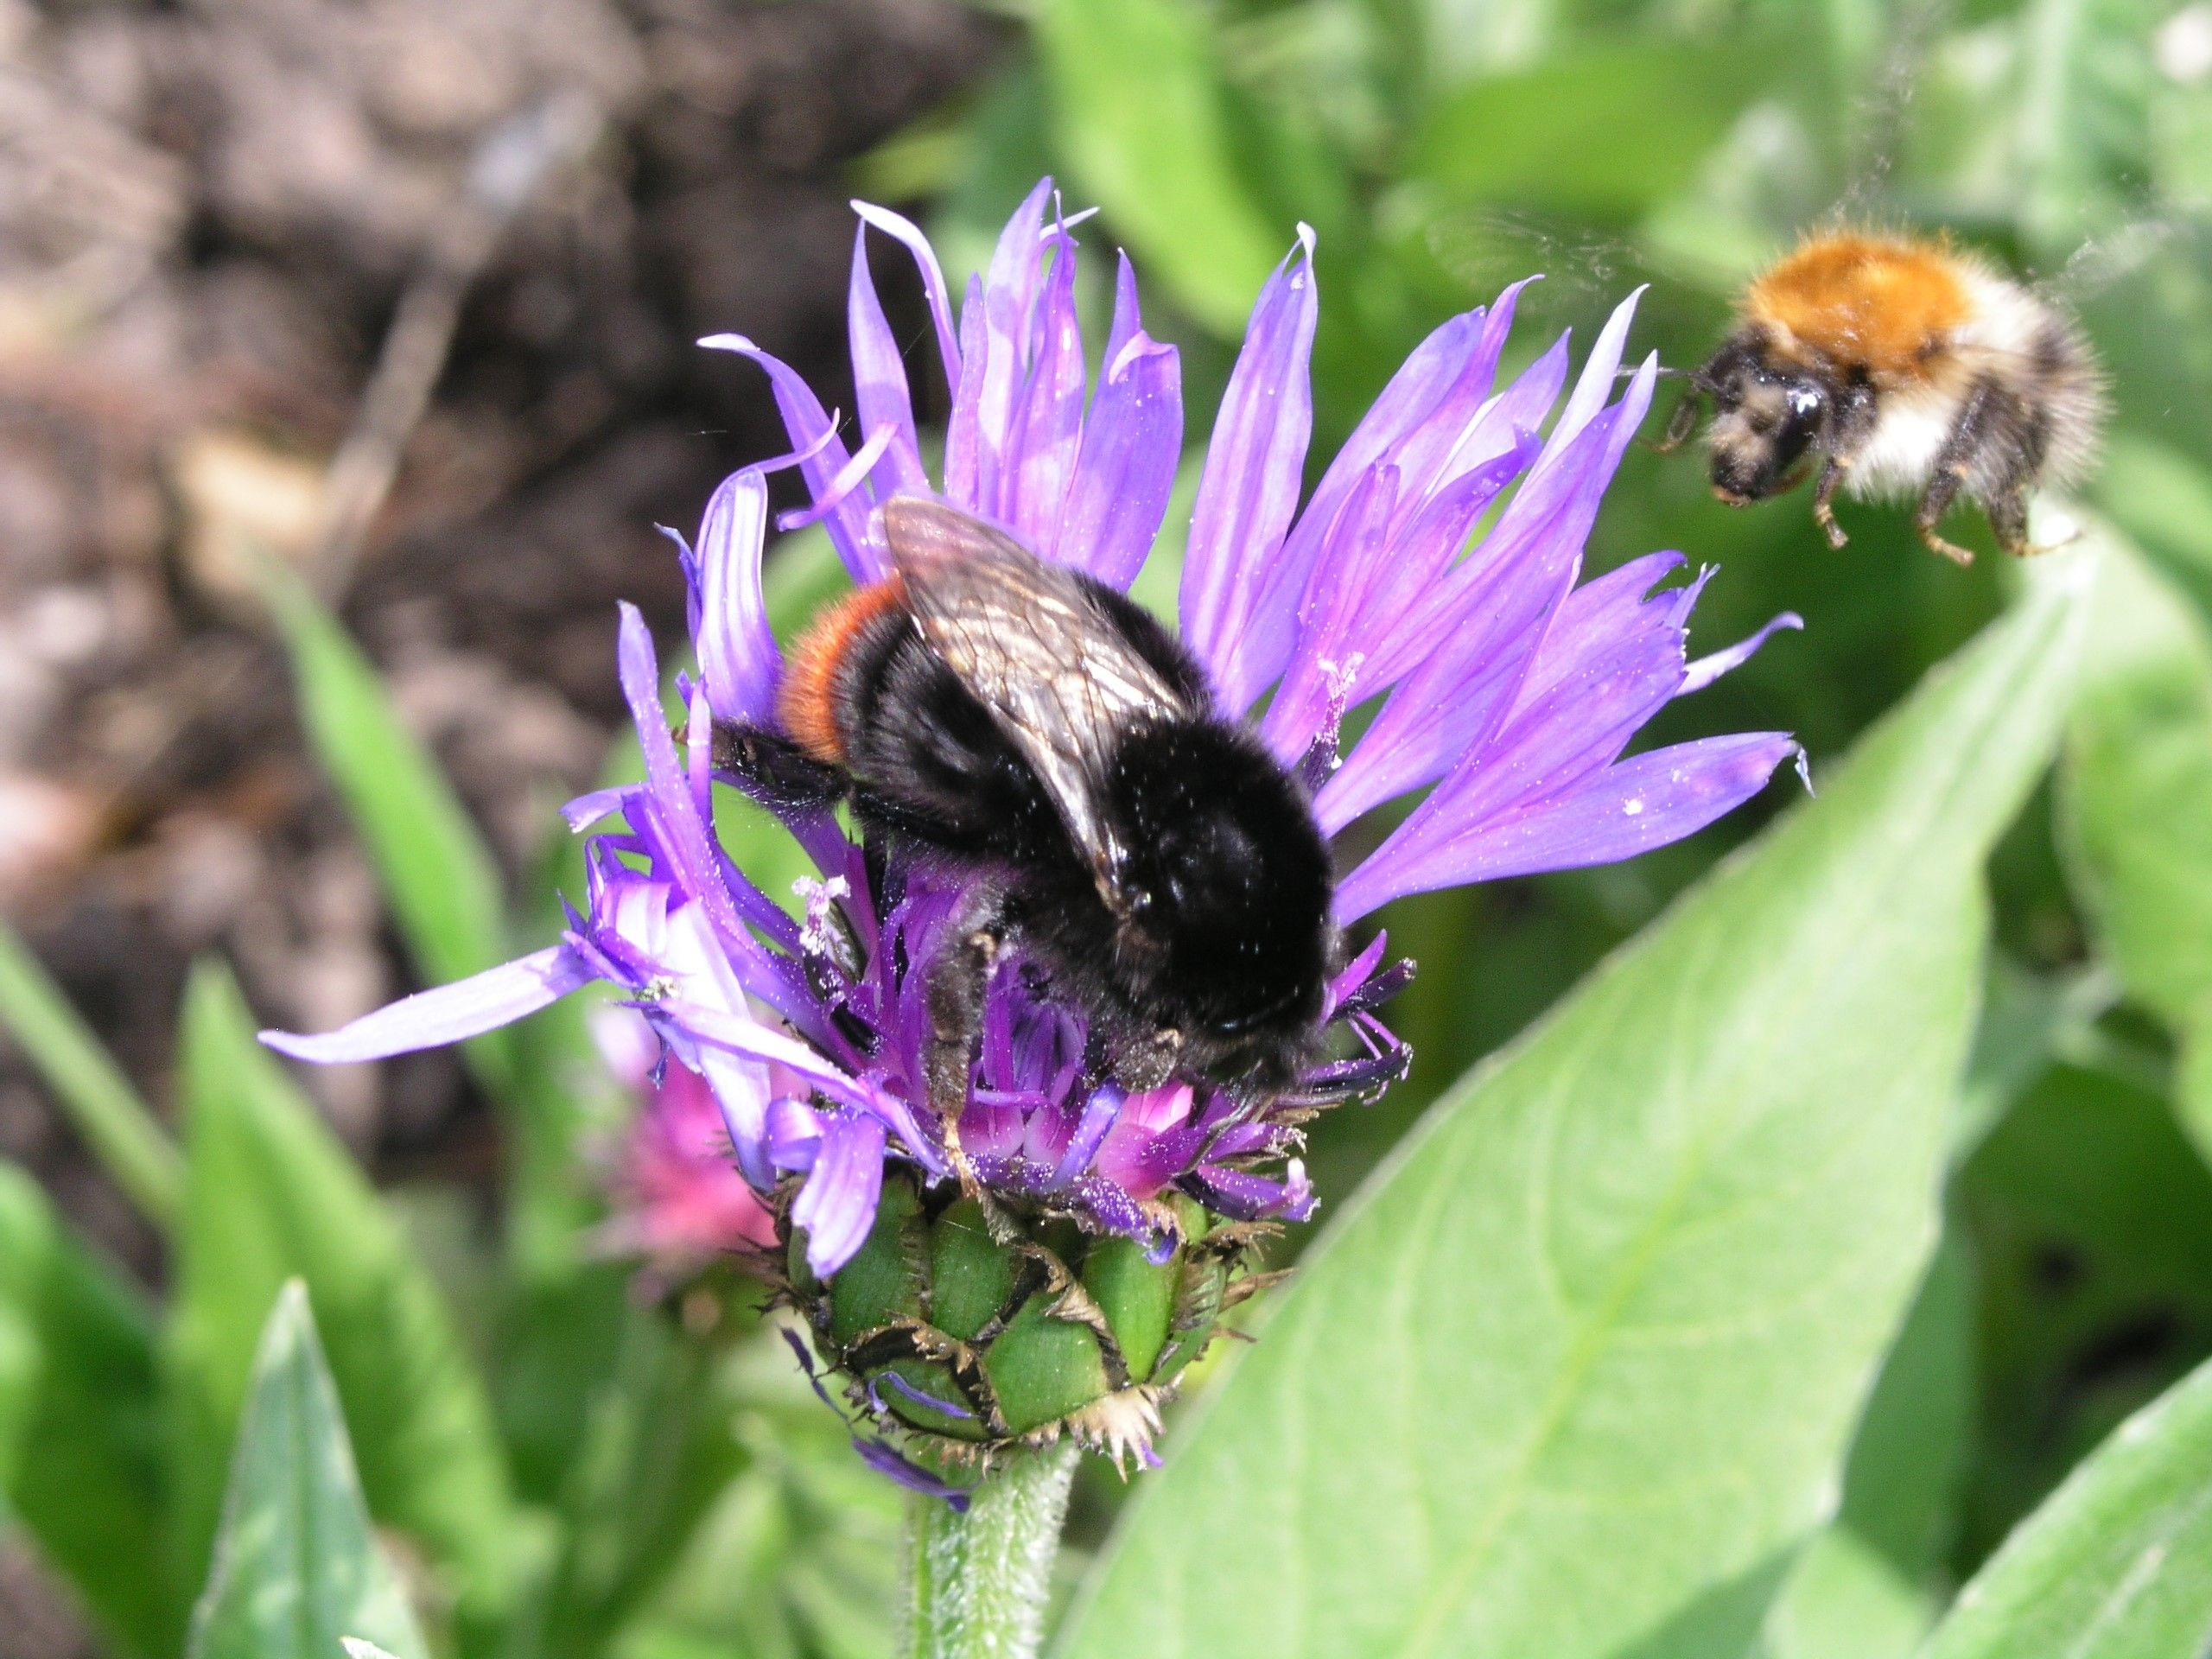 A BUZZ IN THE AIR: It's exciting to know that more and more people are doing what they can to encourage pollinators and the All-Ireland Pollinator Plan (below) is helping spread an important message